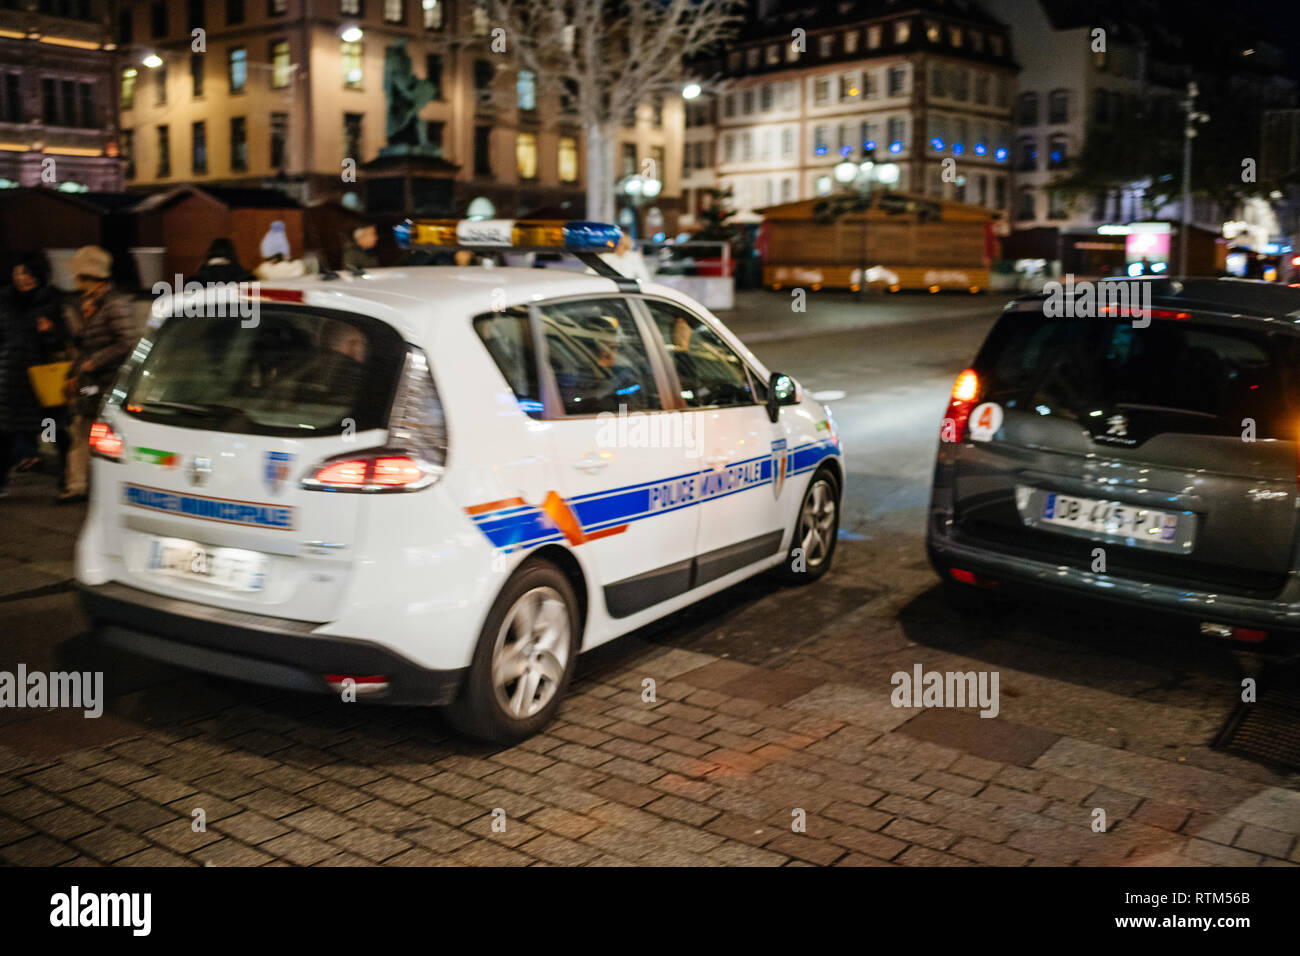 french police car stock photos  u0026 french police car stock images